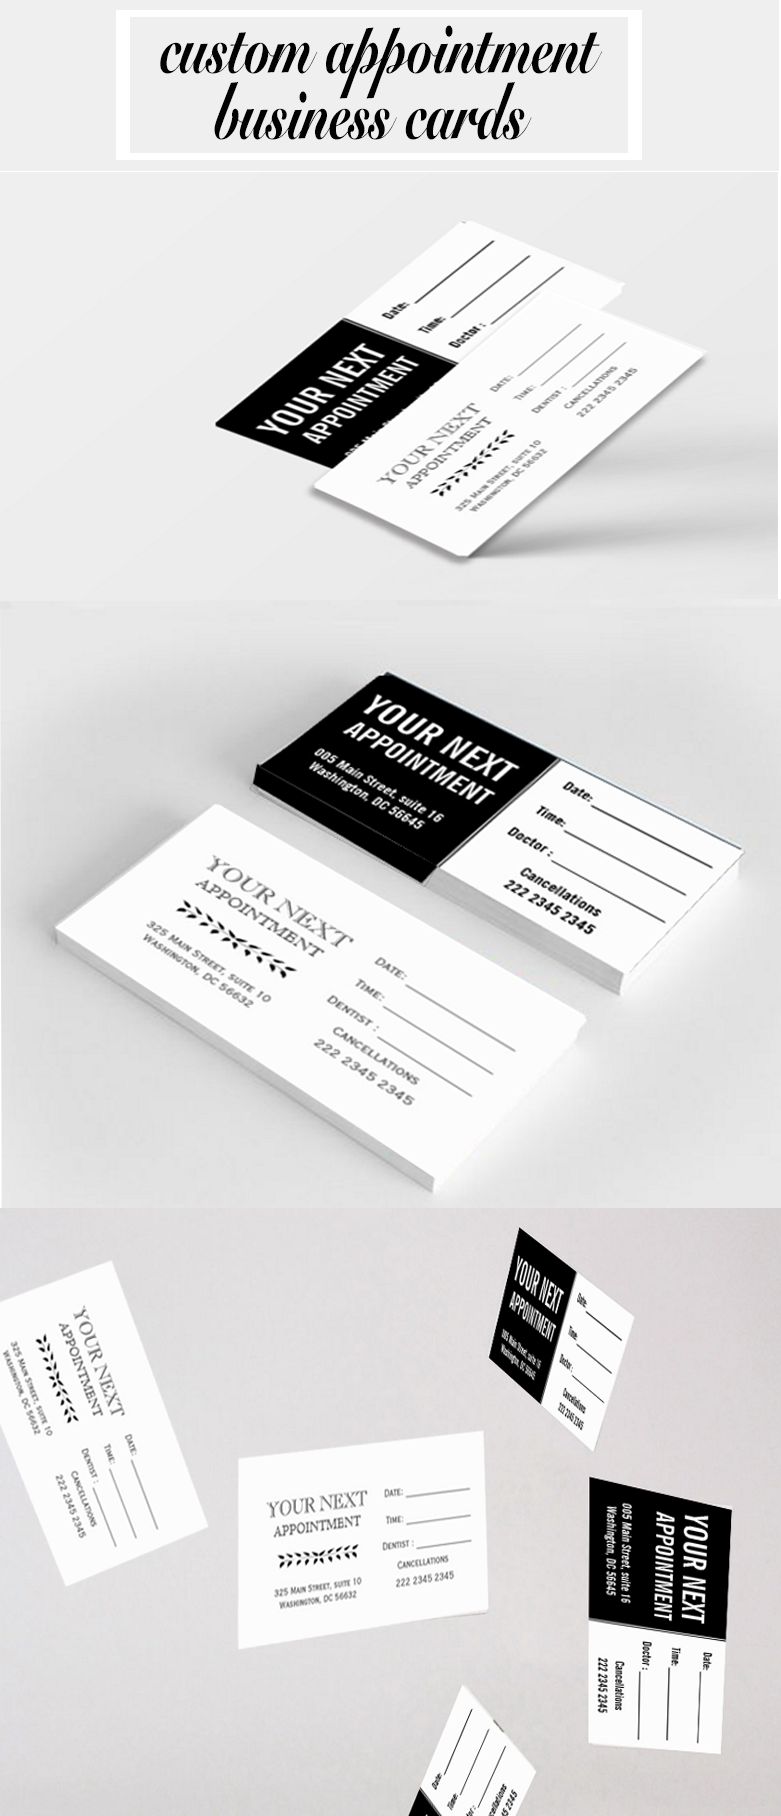 Custom appointment business card design with black and white and custom appointment business card design with black and white and white with black handmade drawing magicingreecefo Gallery